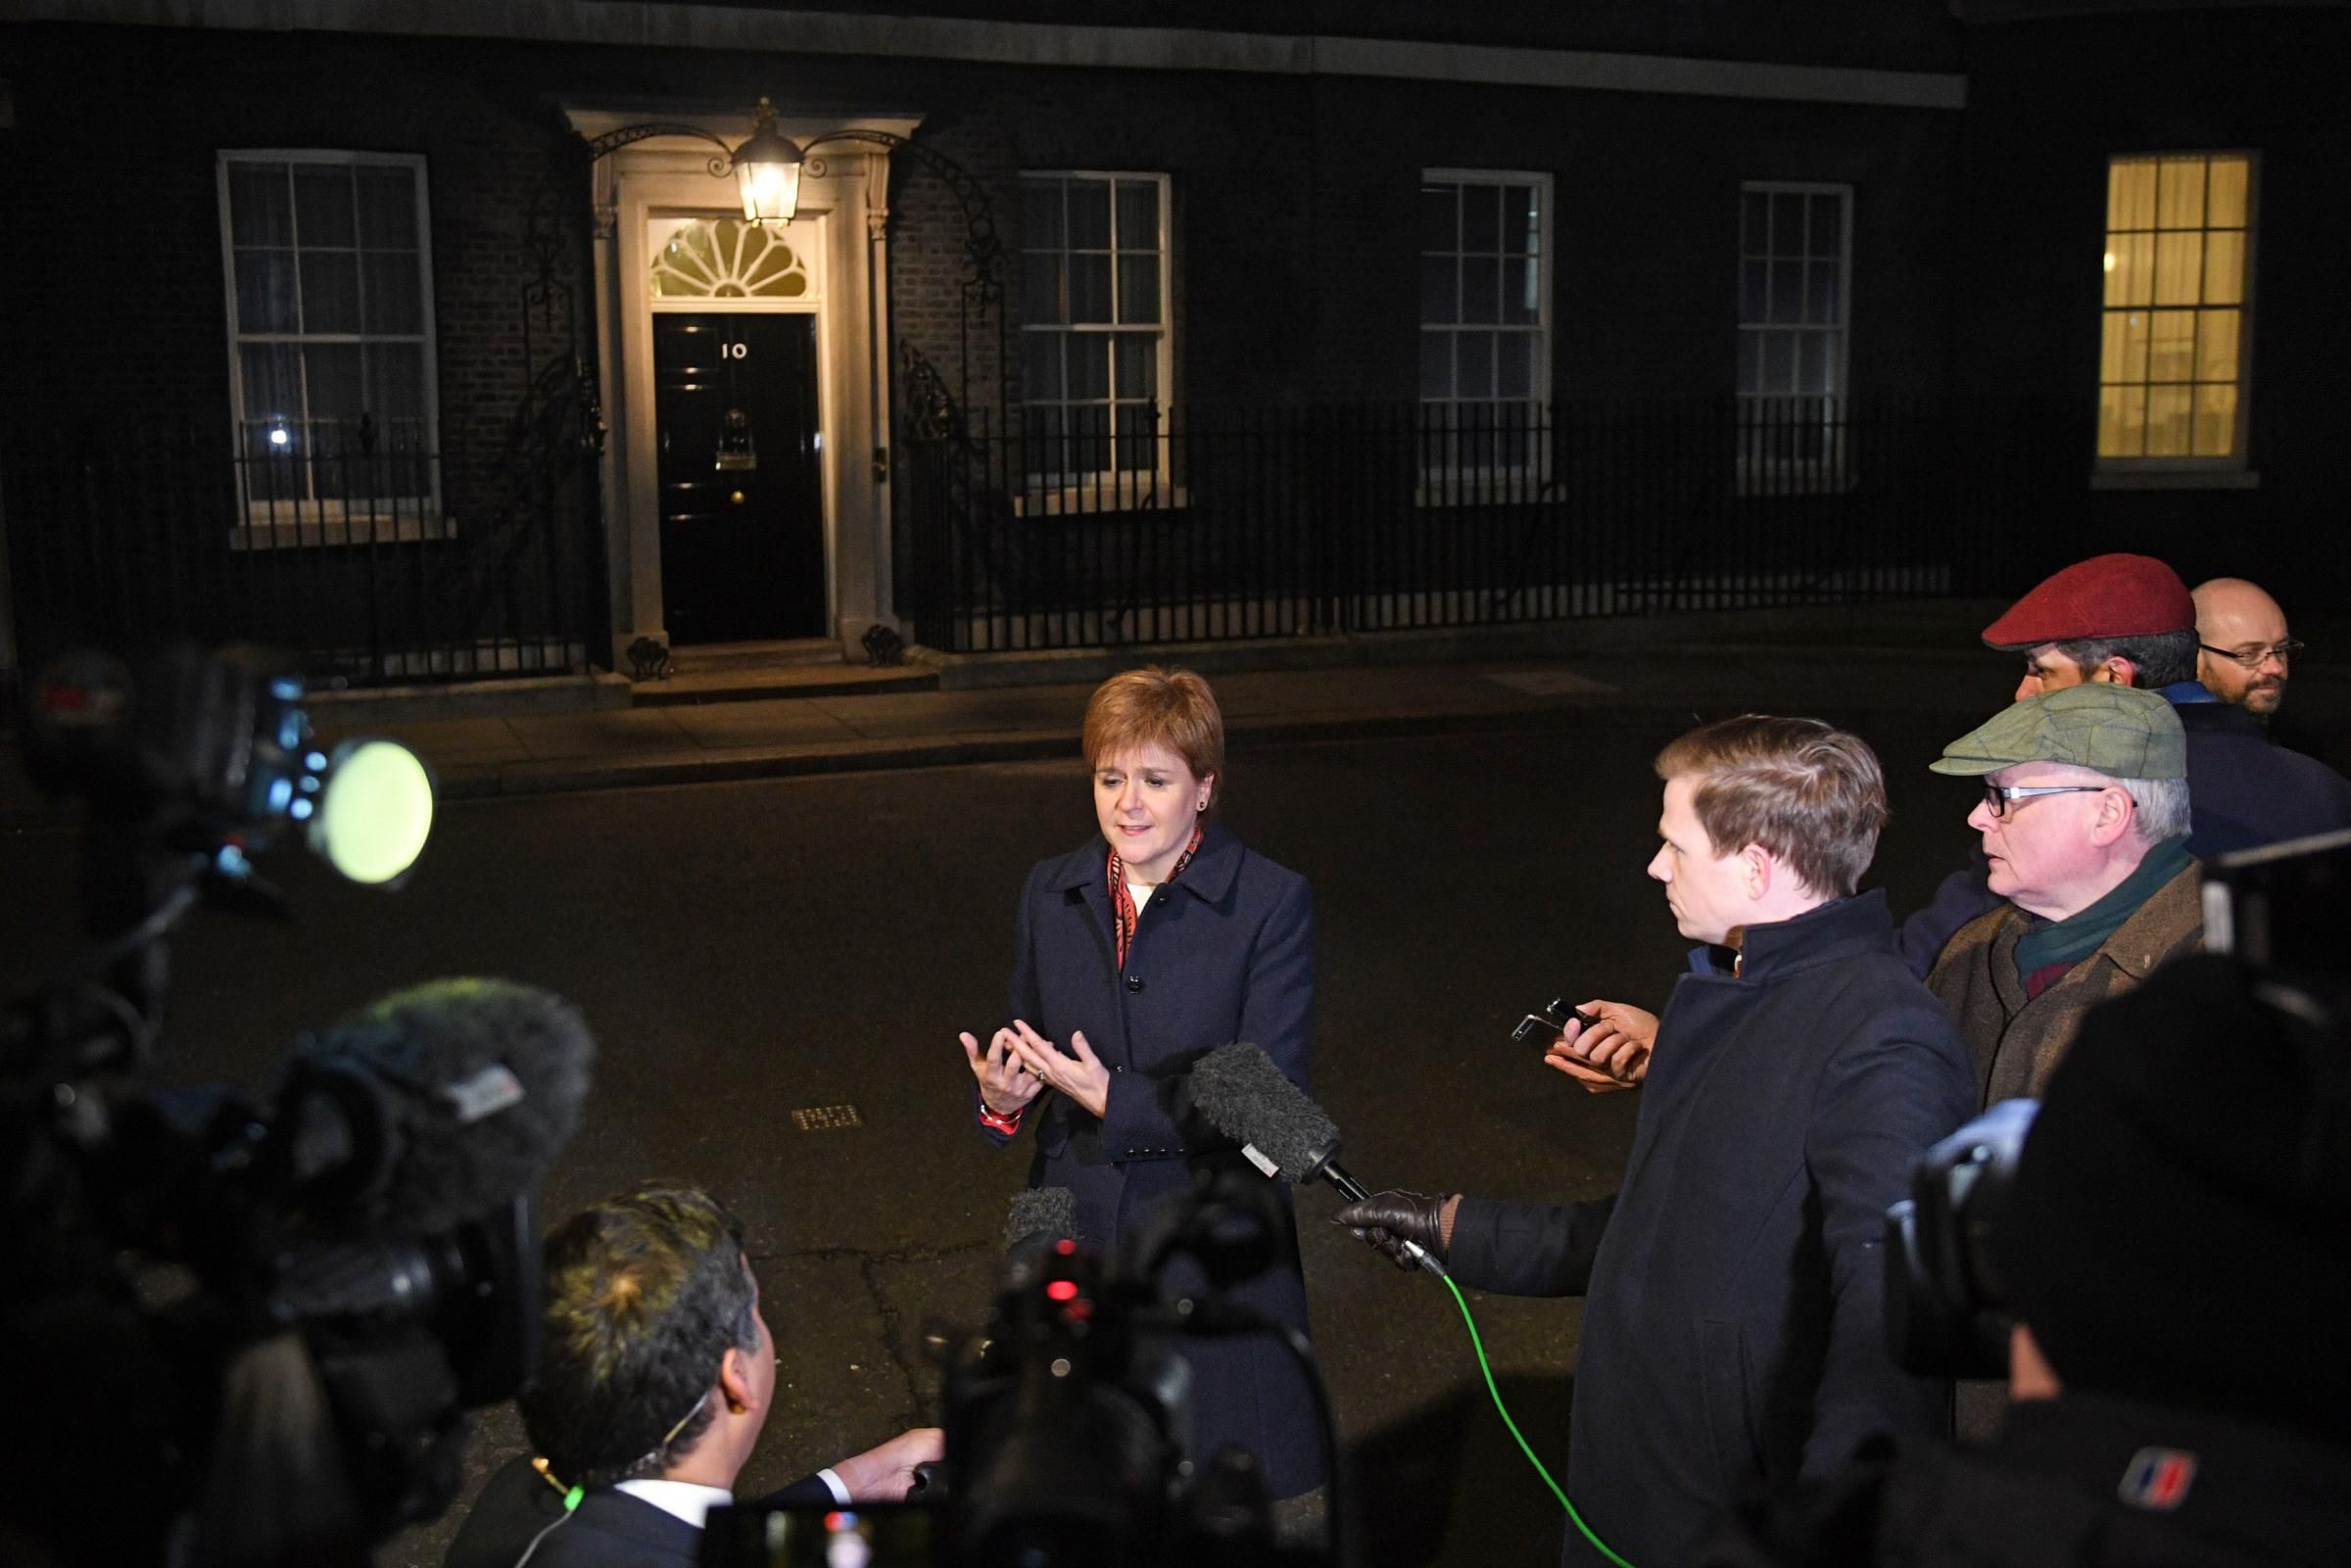 First Minister Nicola Sturgeon spoke to the media after a Brexit meeting in No 10